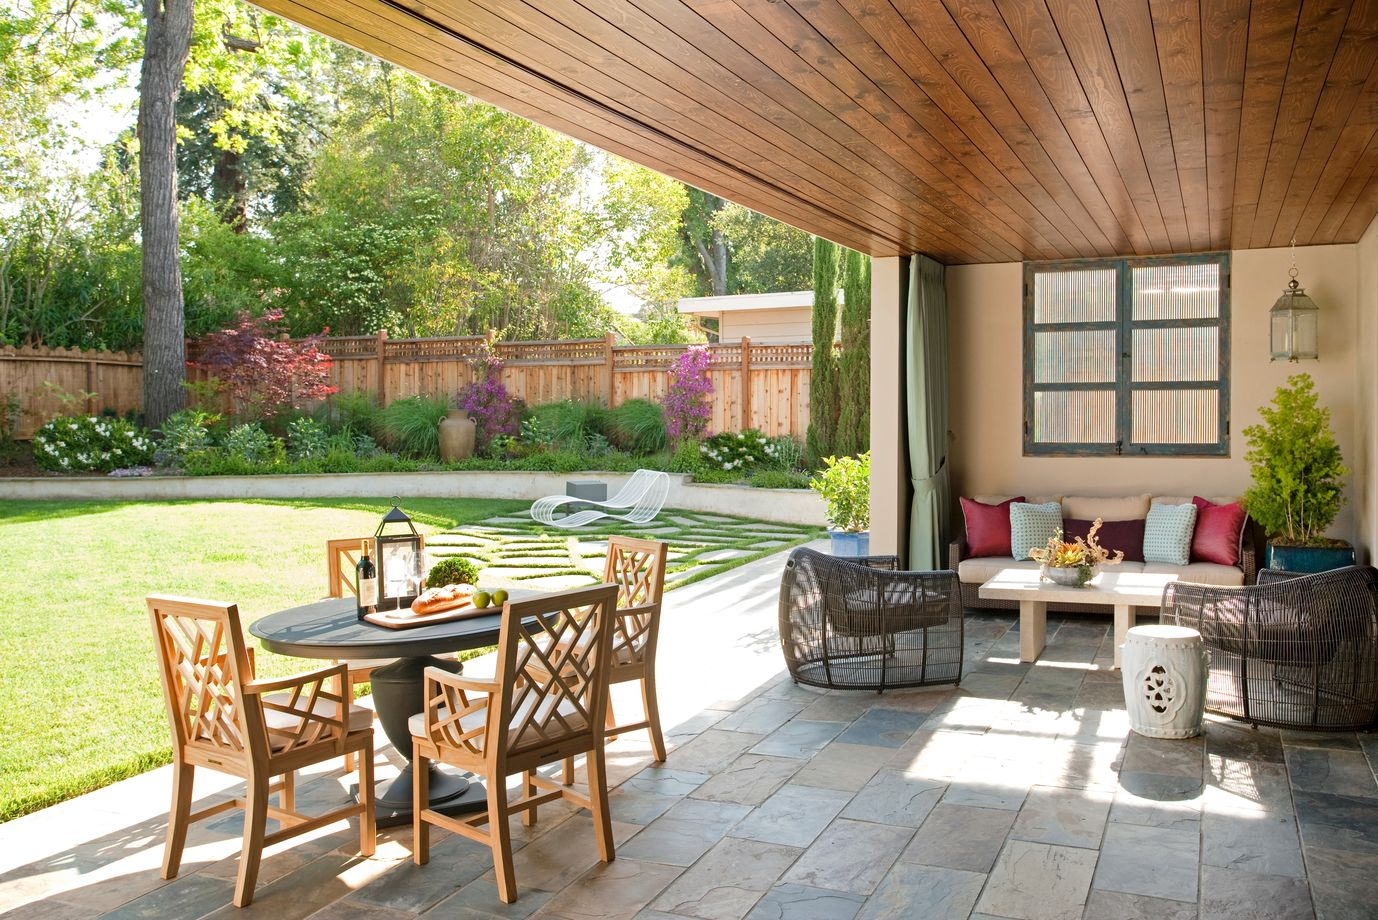 Patio Ideas to Make Your Backyard the Ideal Summer Escape on Extended Covered Patio Ideas id=62619